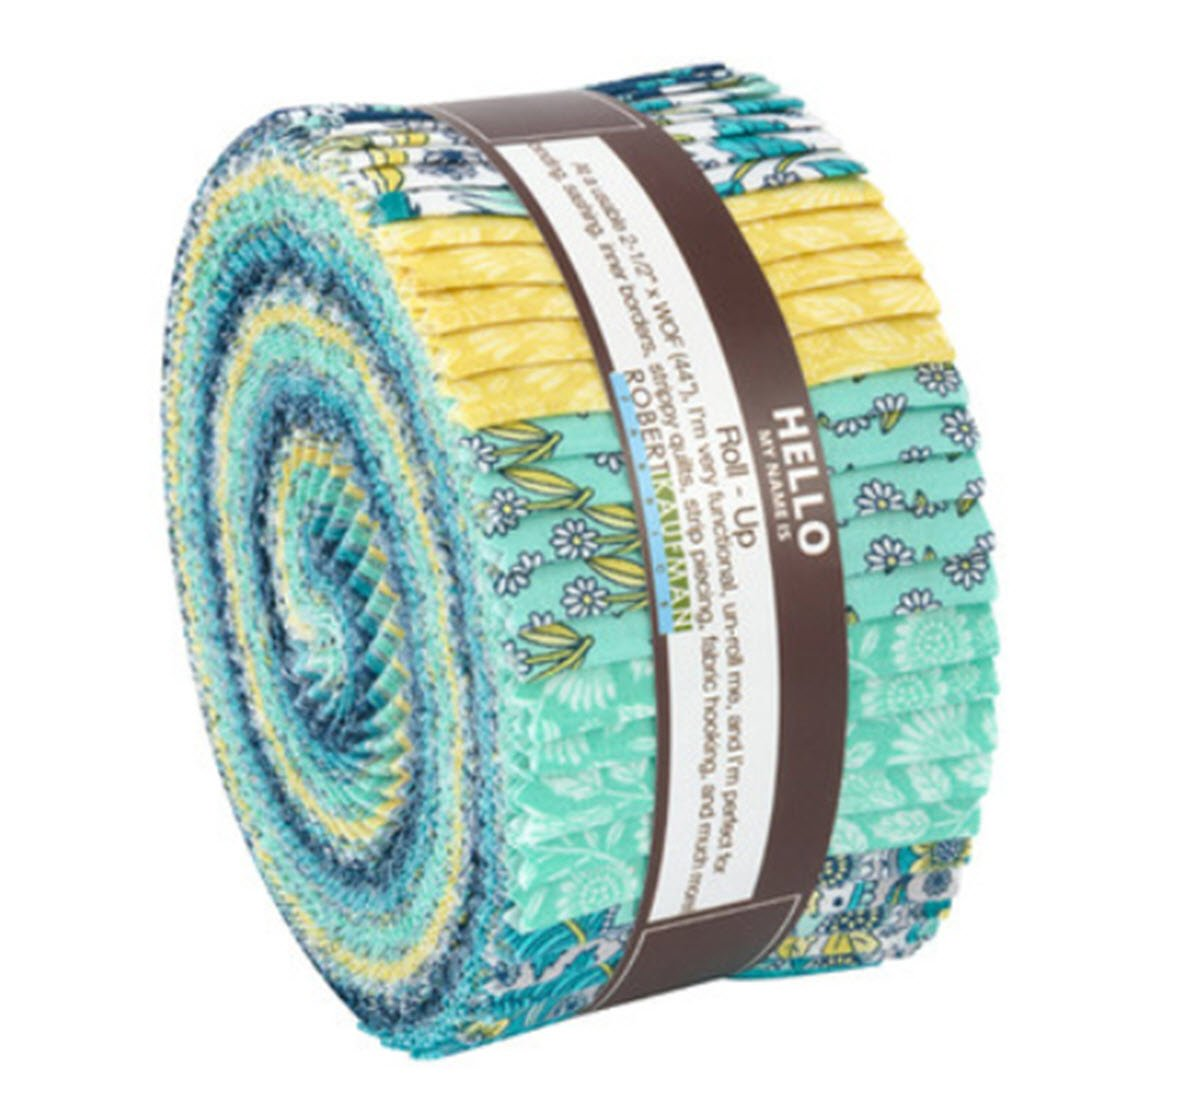 Delphine Breeze Colorstory Roll up 2.5